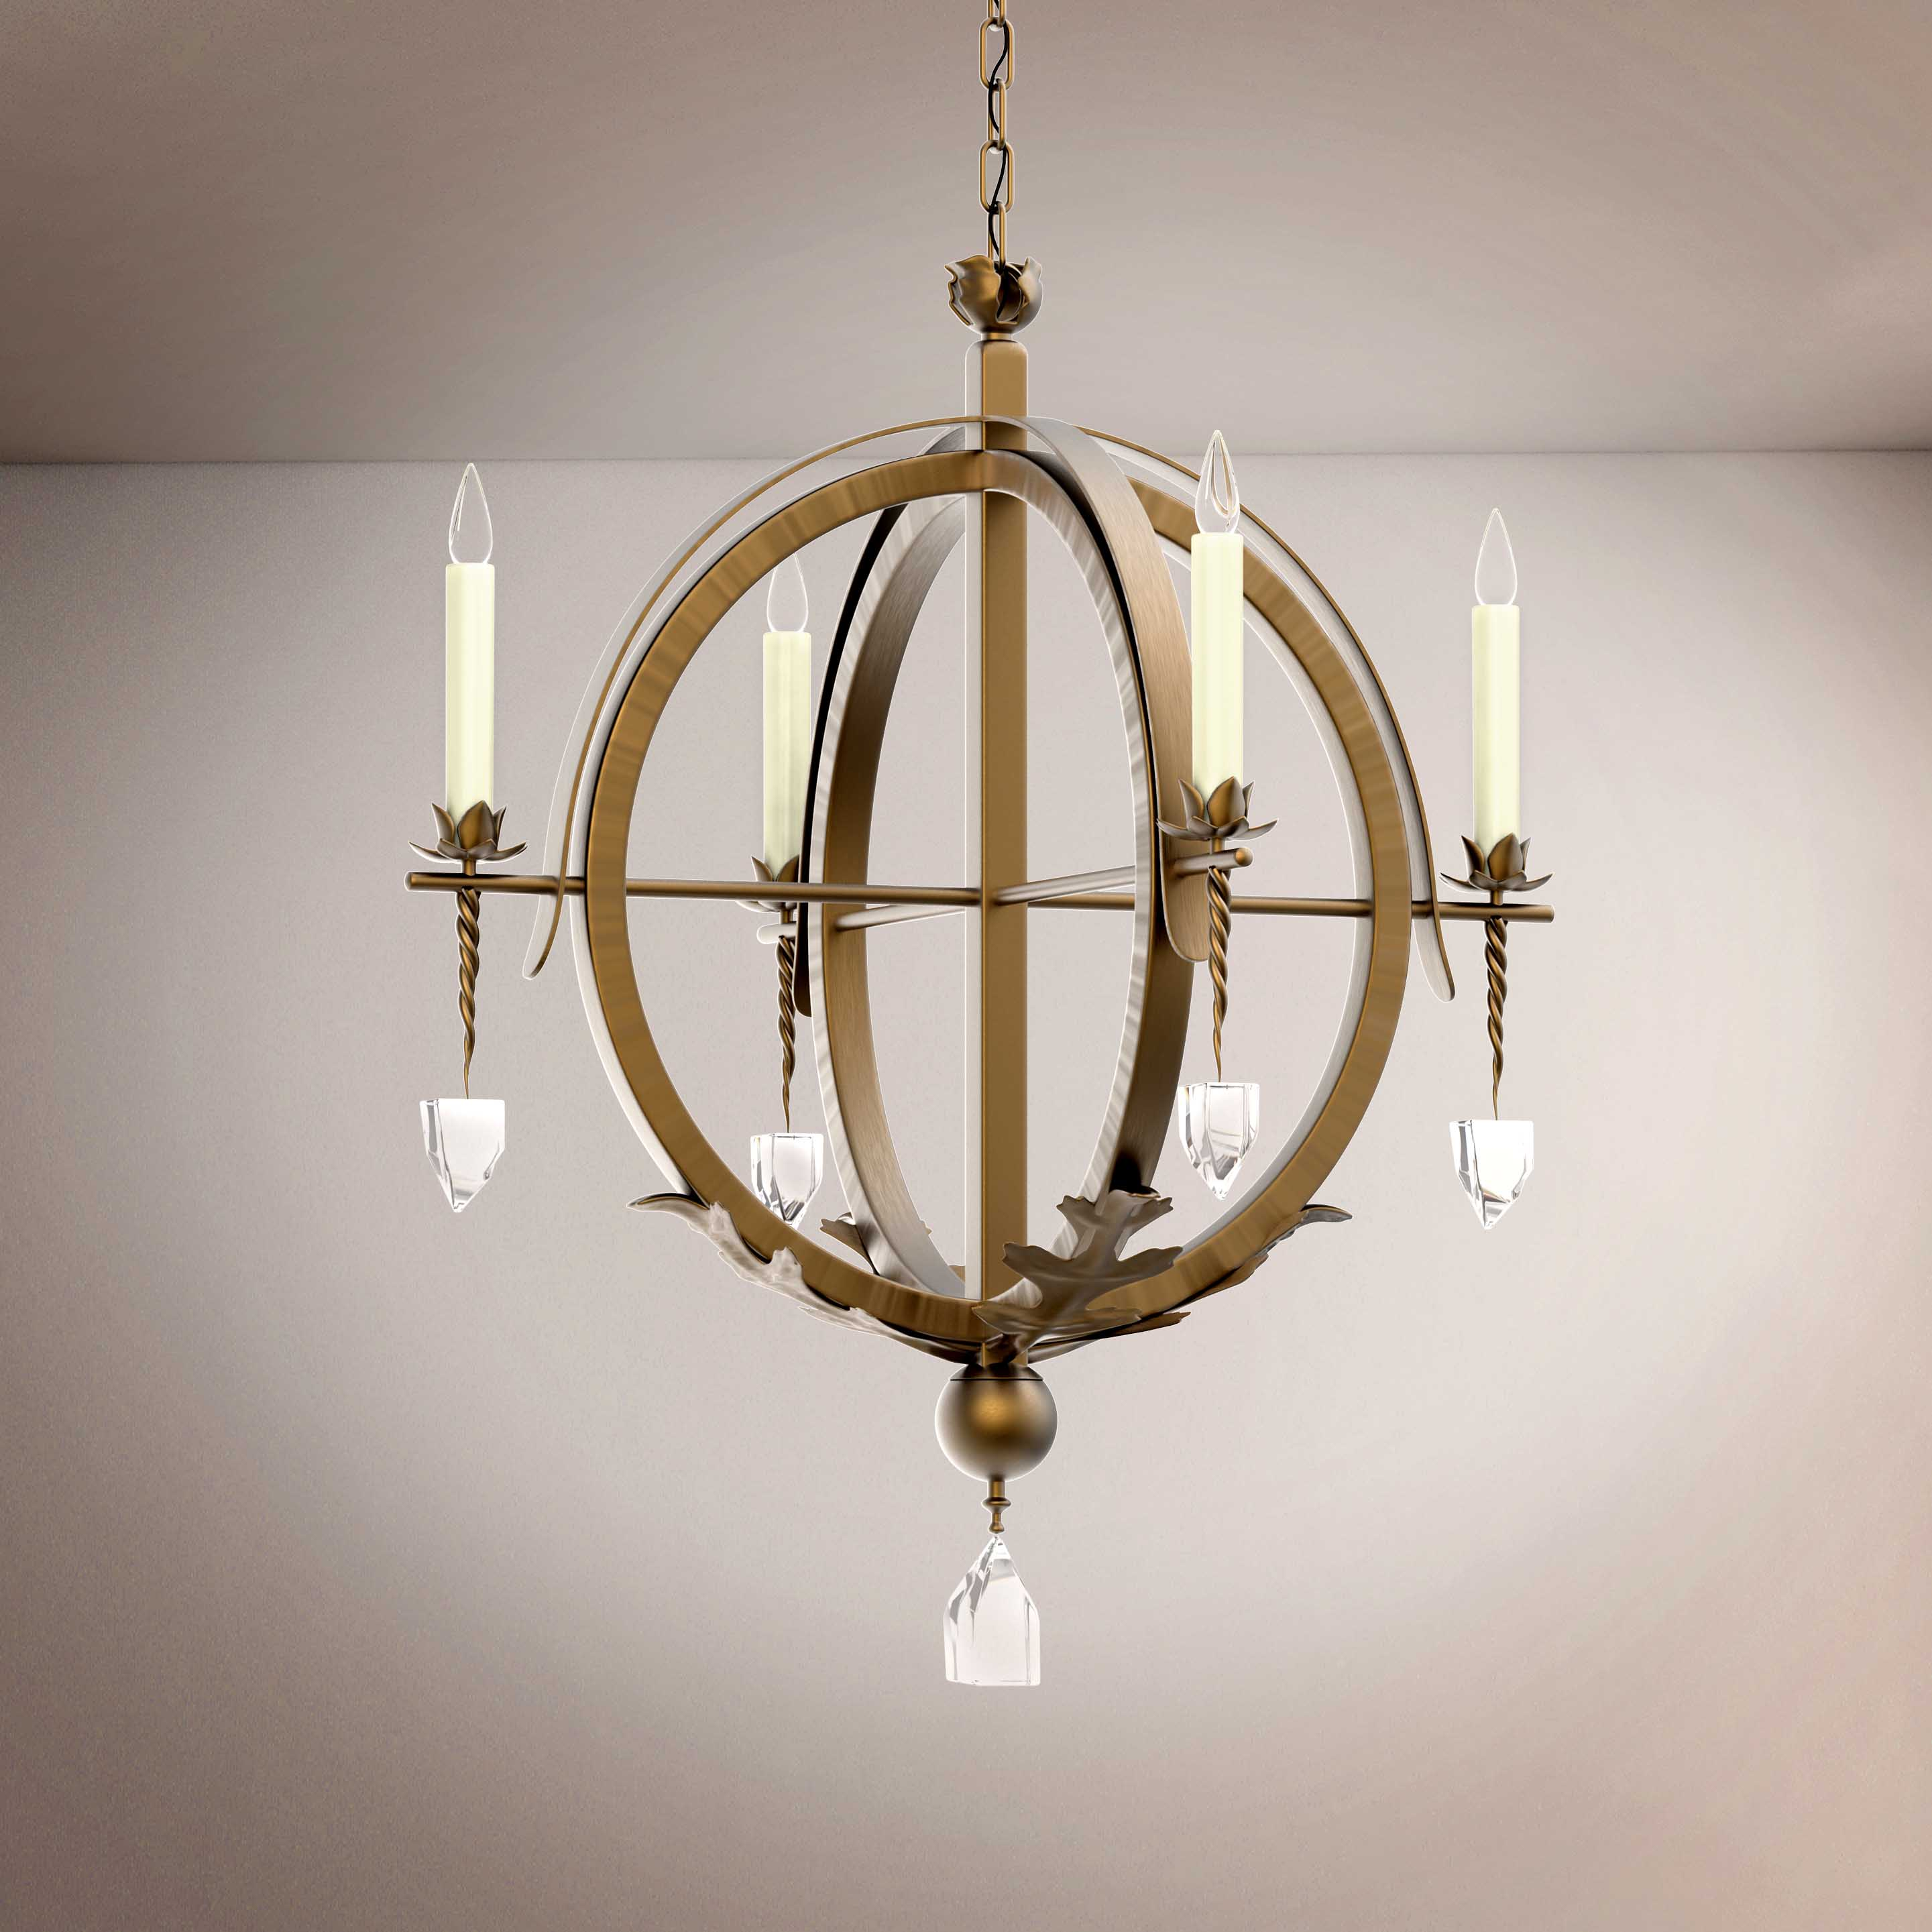 Vintage Sphere  Style Hanging Chandelier - 3D Product